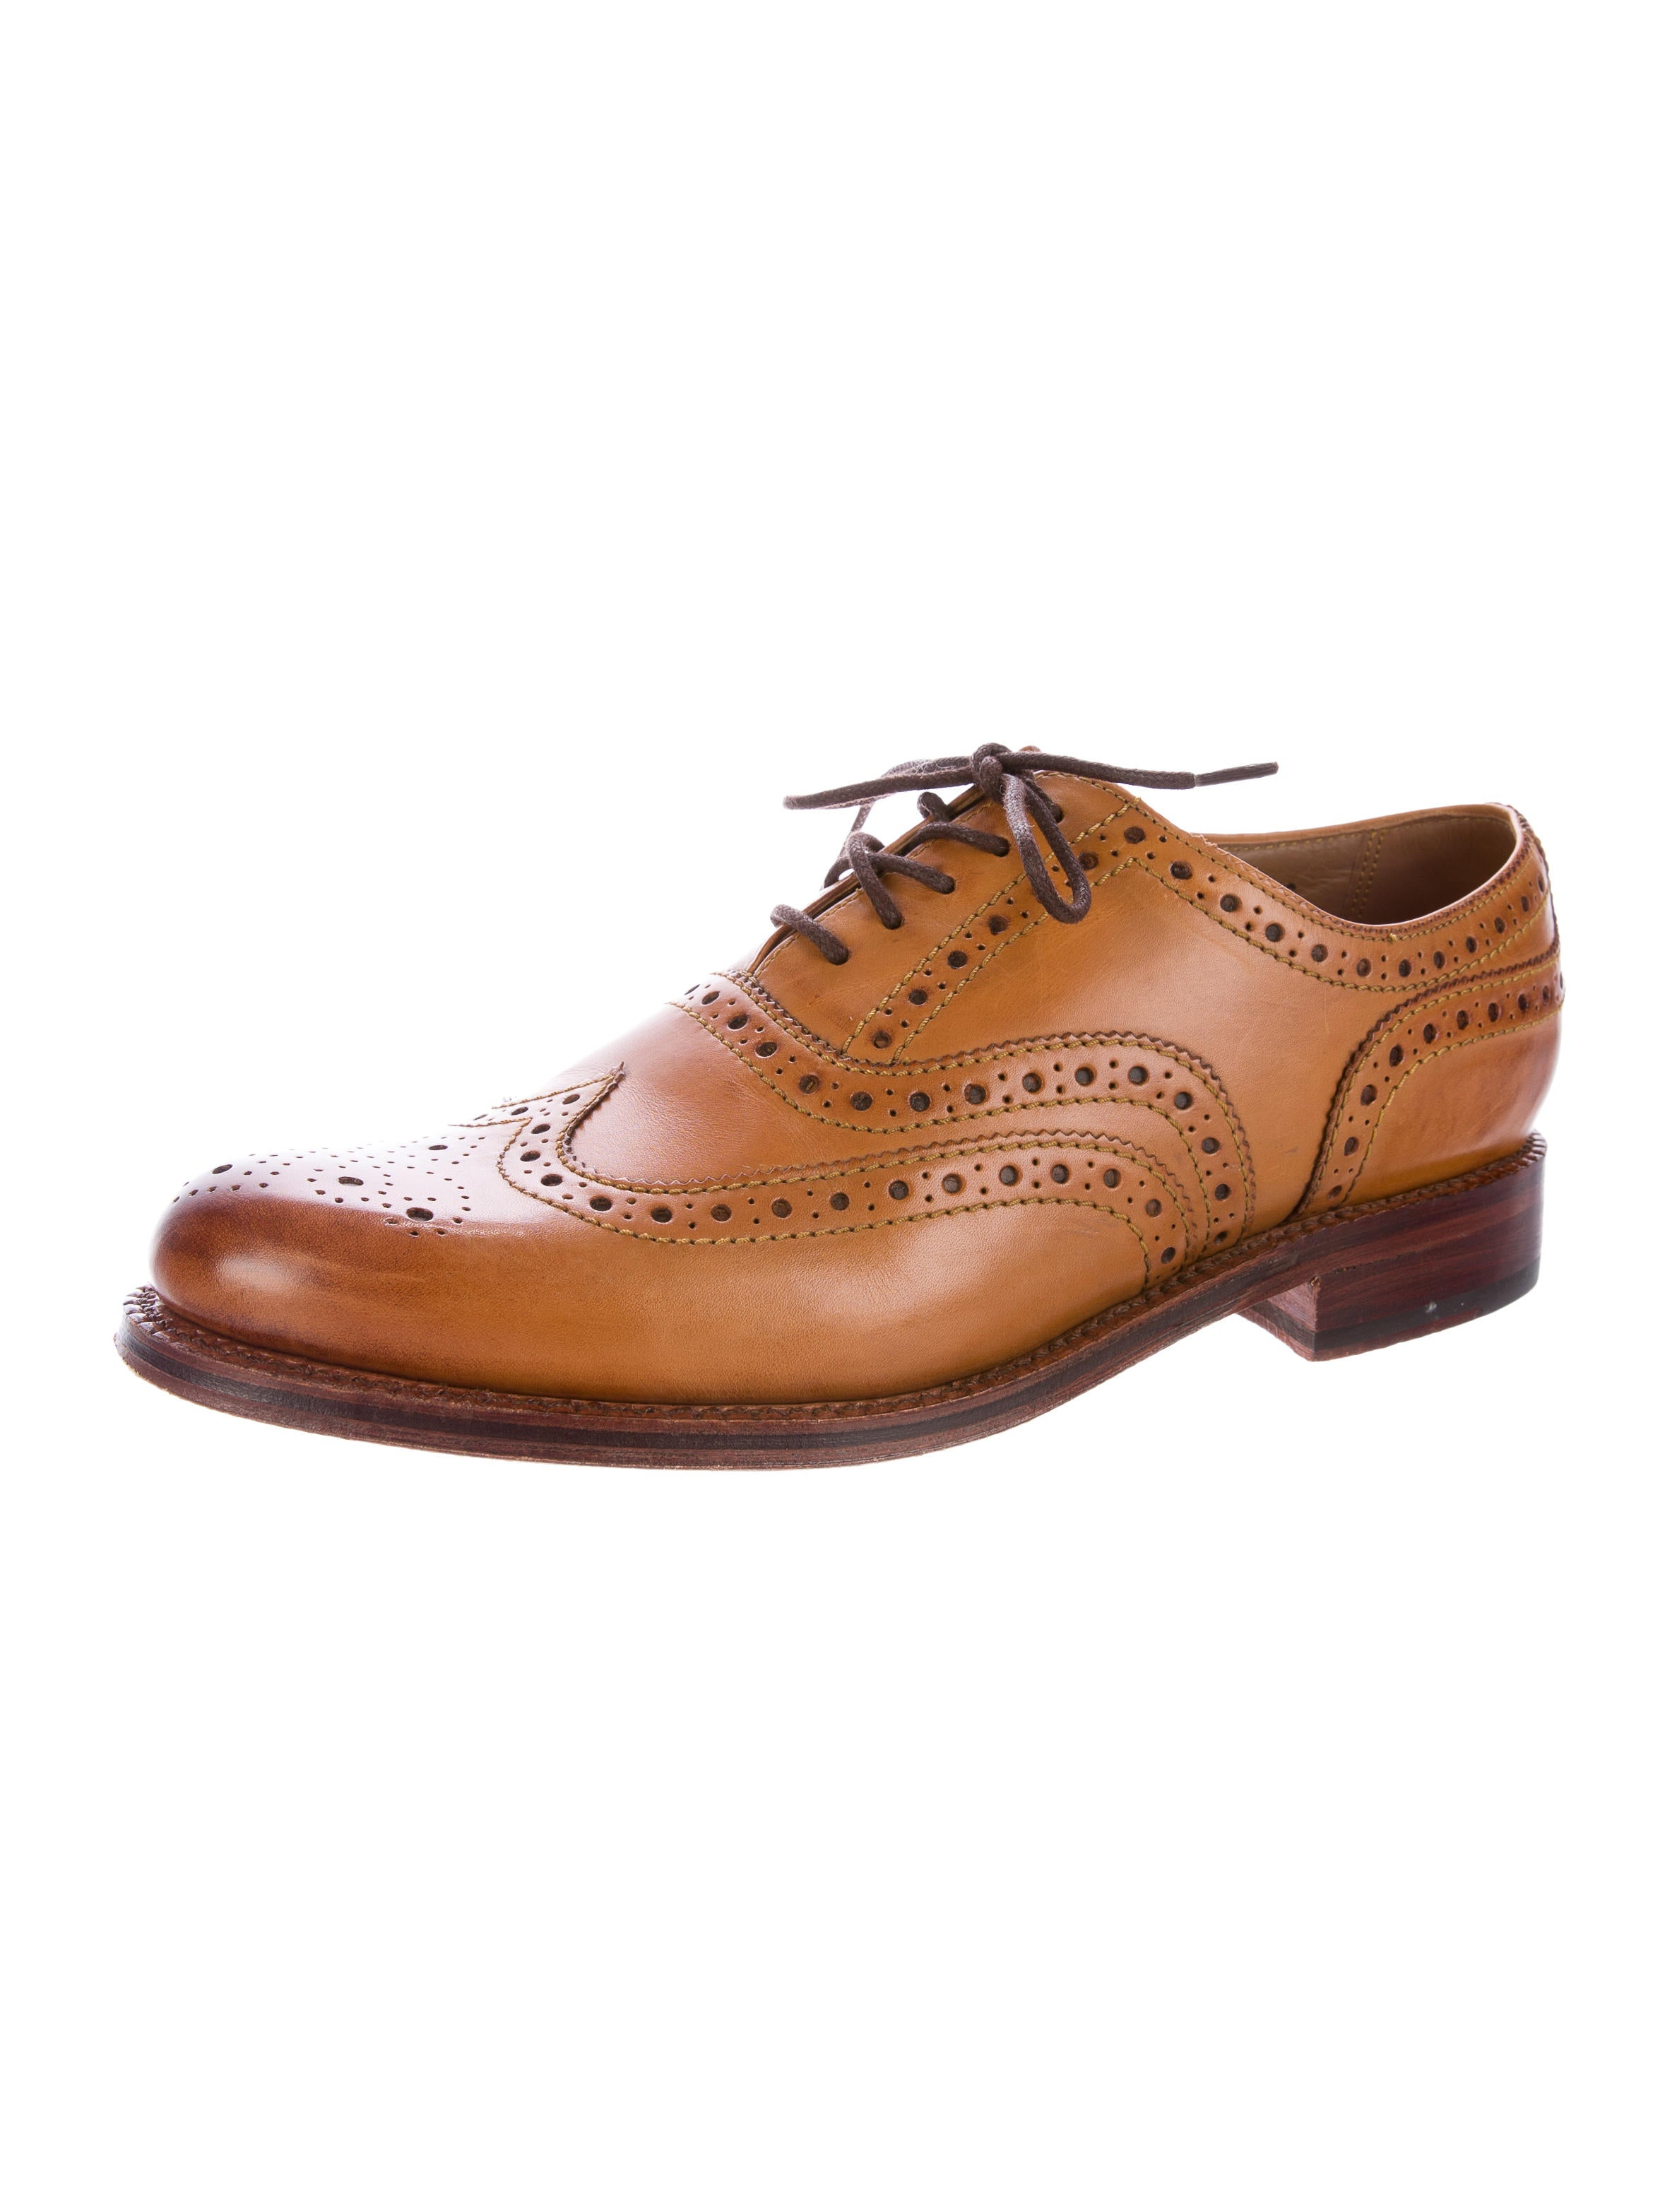 grenson leather wingtip brogues shoes wgren20090 the